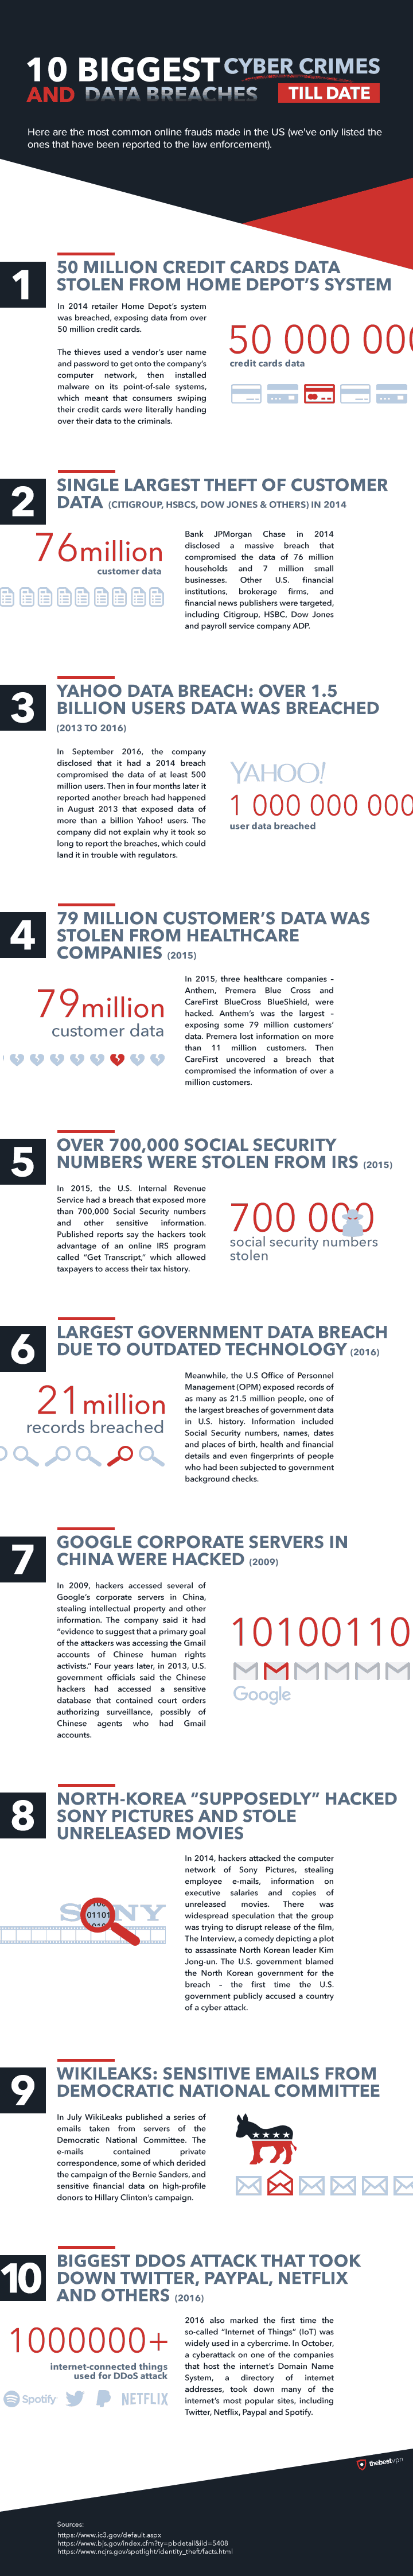 Infographic: 10 cyber crimes